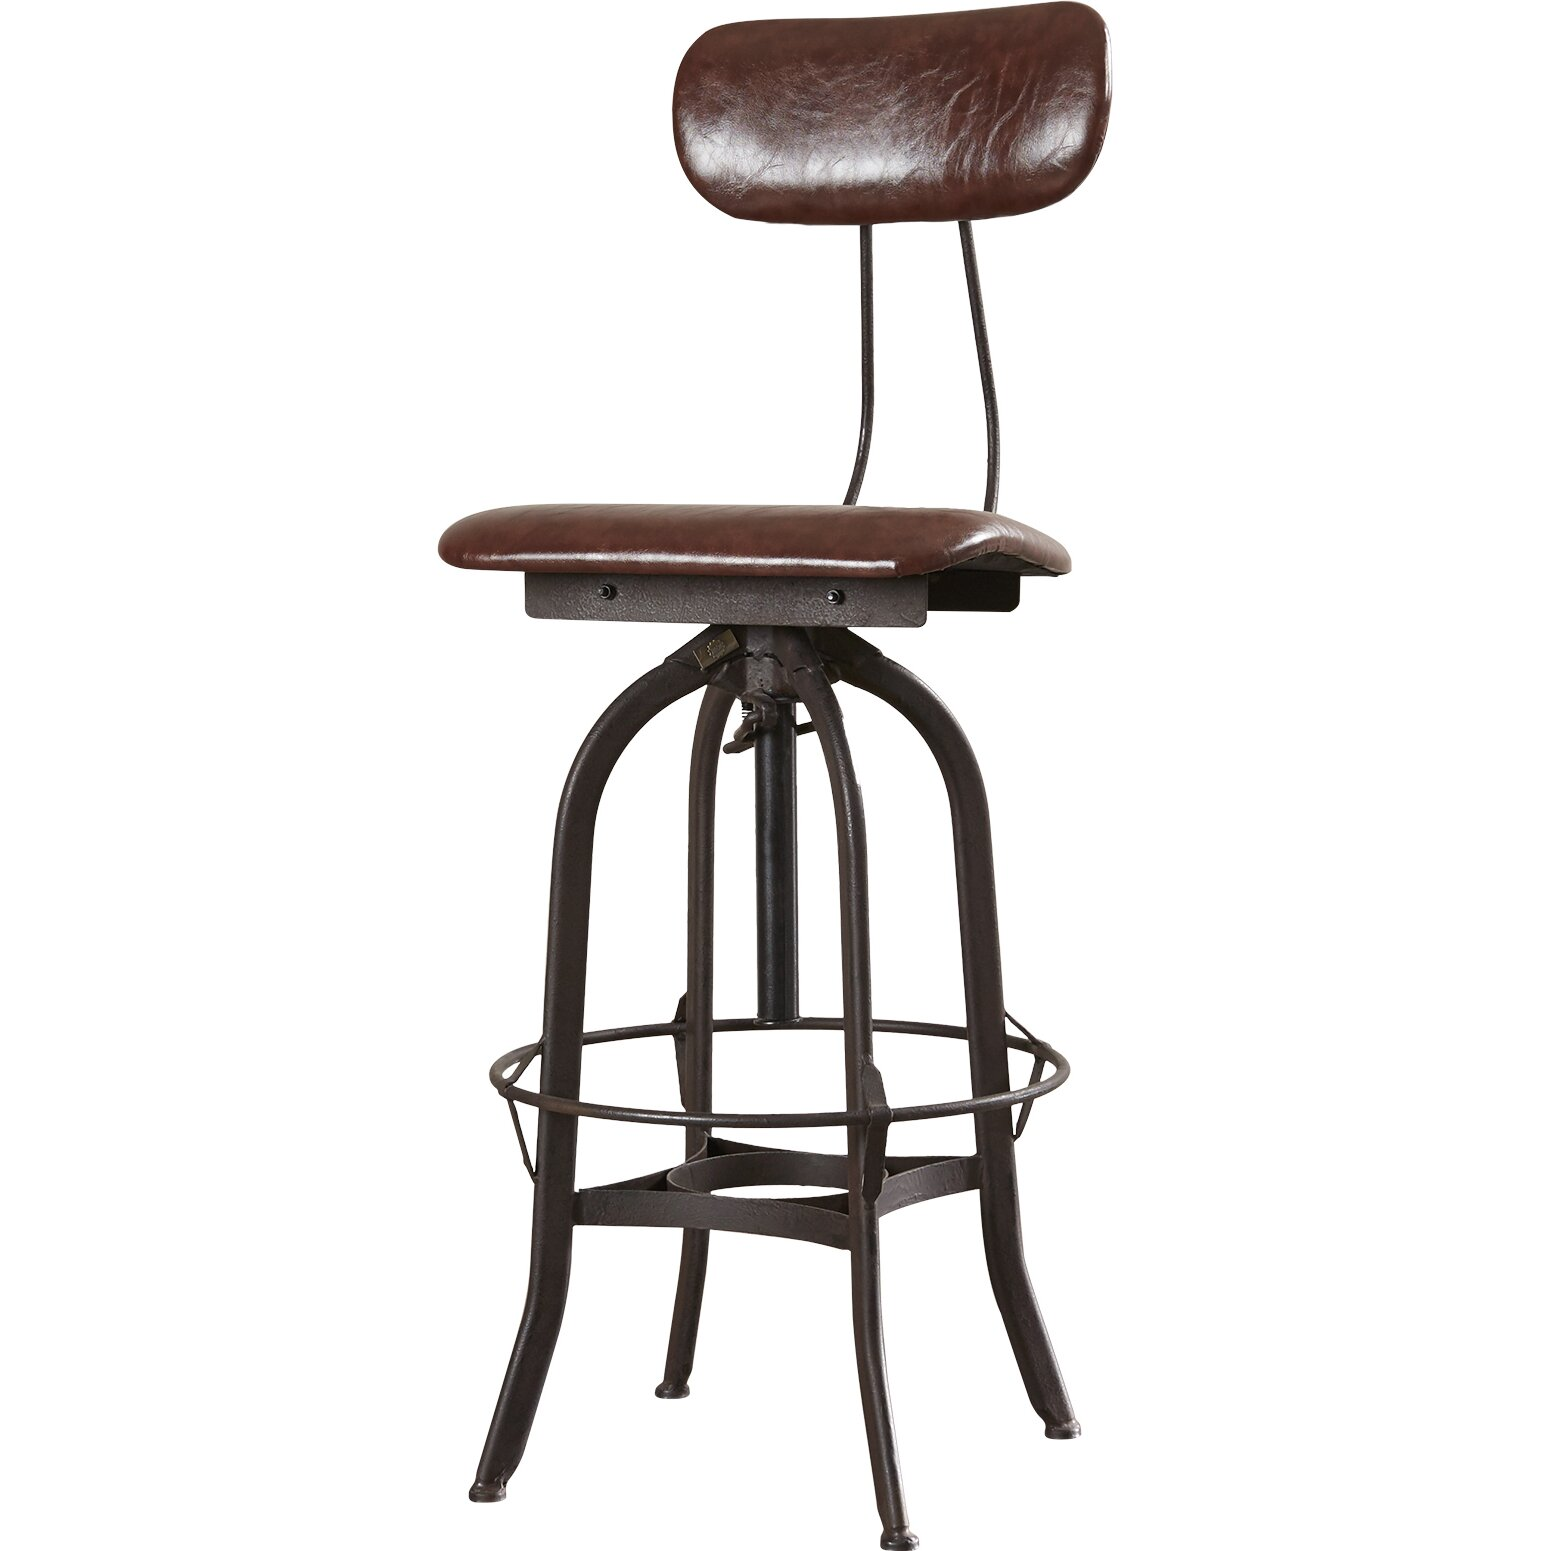 Trent austin design adjustable height swivel bar stool for Counter height swivel bar stools